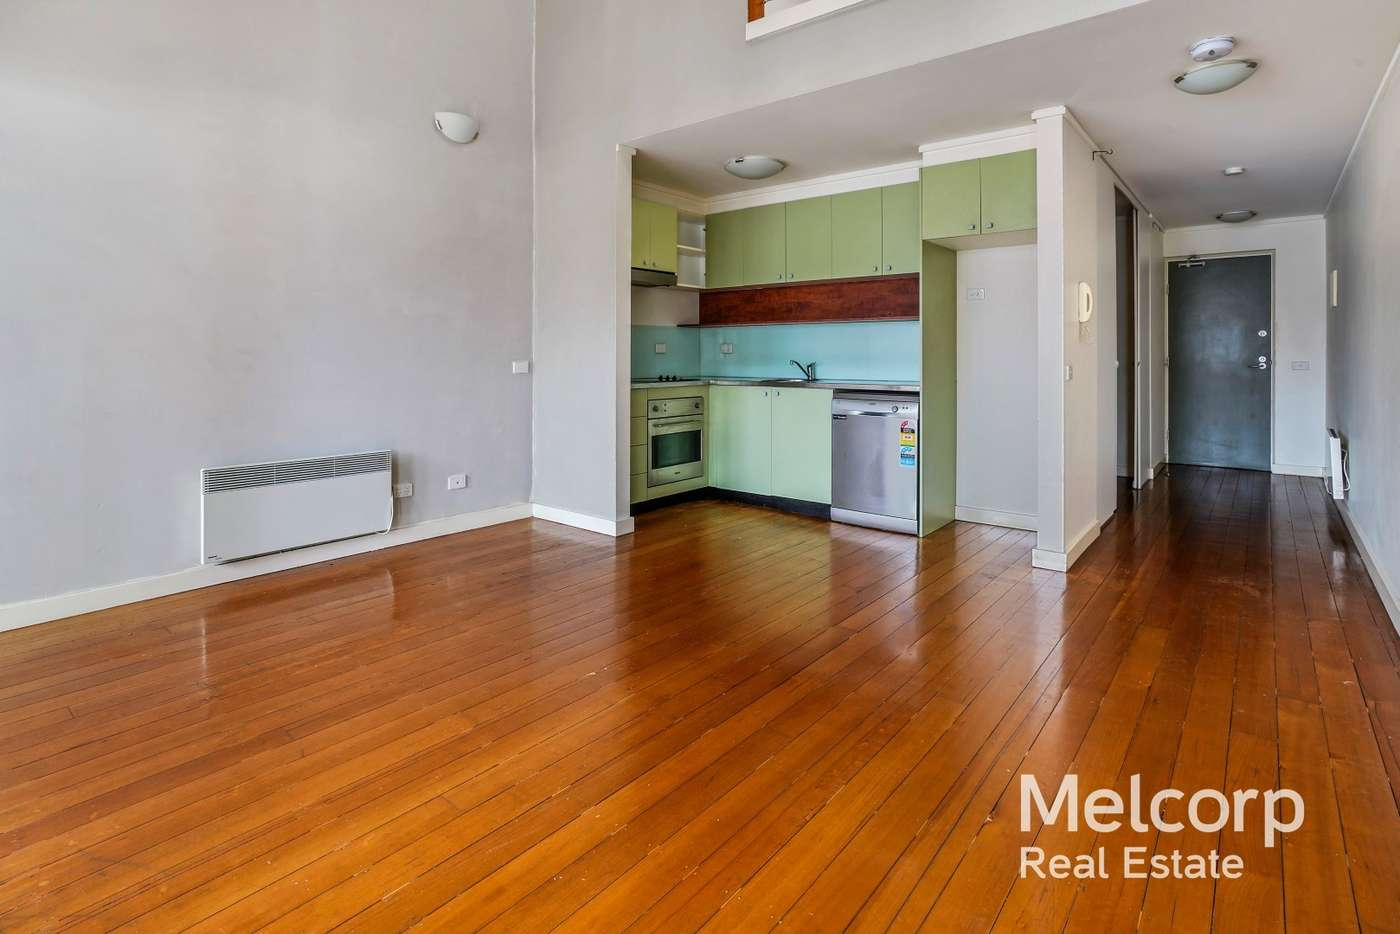 Main view of Homely apartment listing, 11/51 Stawell Street, West Melbourne VIC 3003